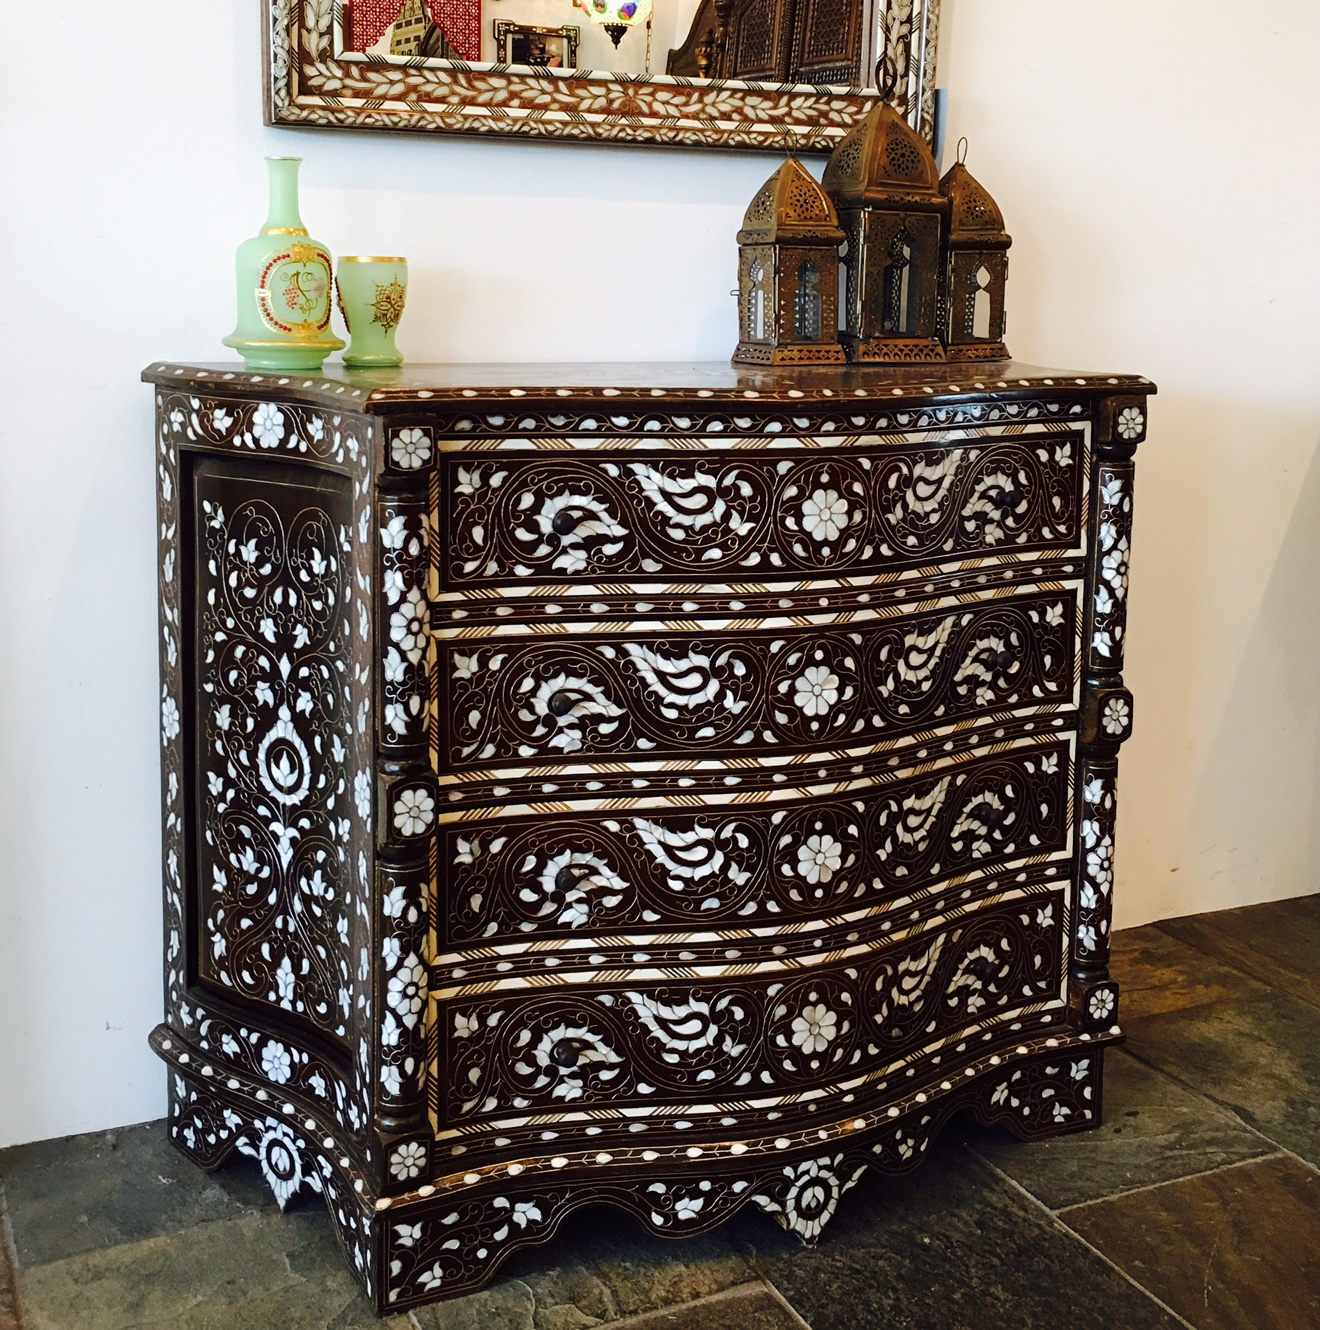 Moroccan style chest